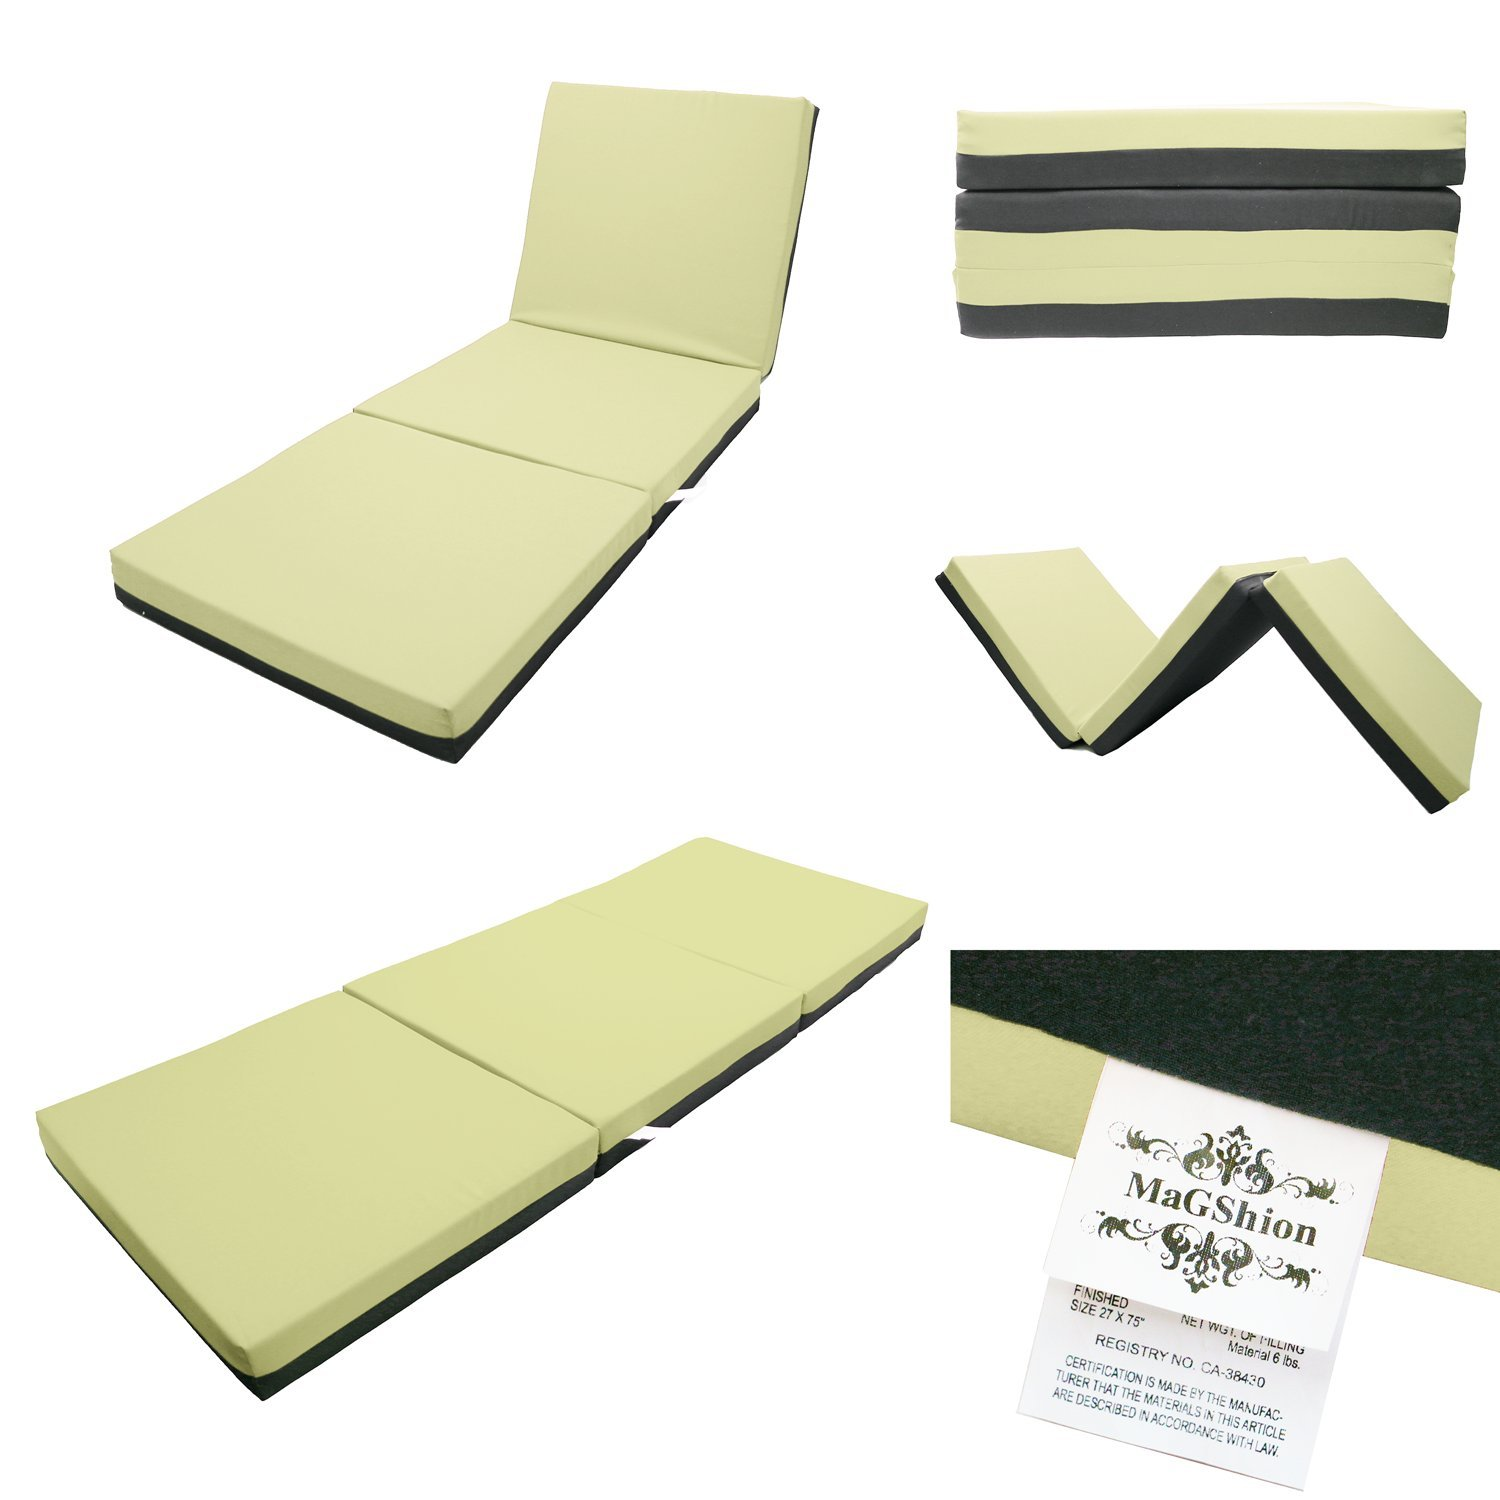 Magshion Sleep Folding Memory Foam Floor Mattress Thai Massage Bed Tri-Fold - Full Size (Khaki) by Magshion Furniture